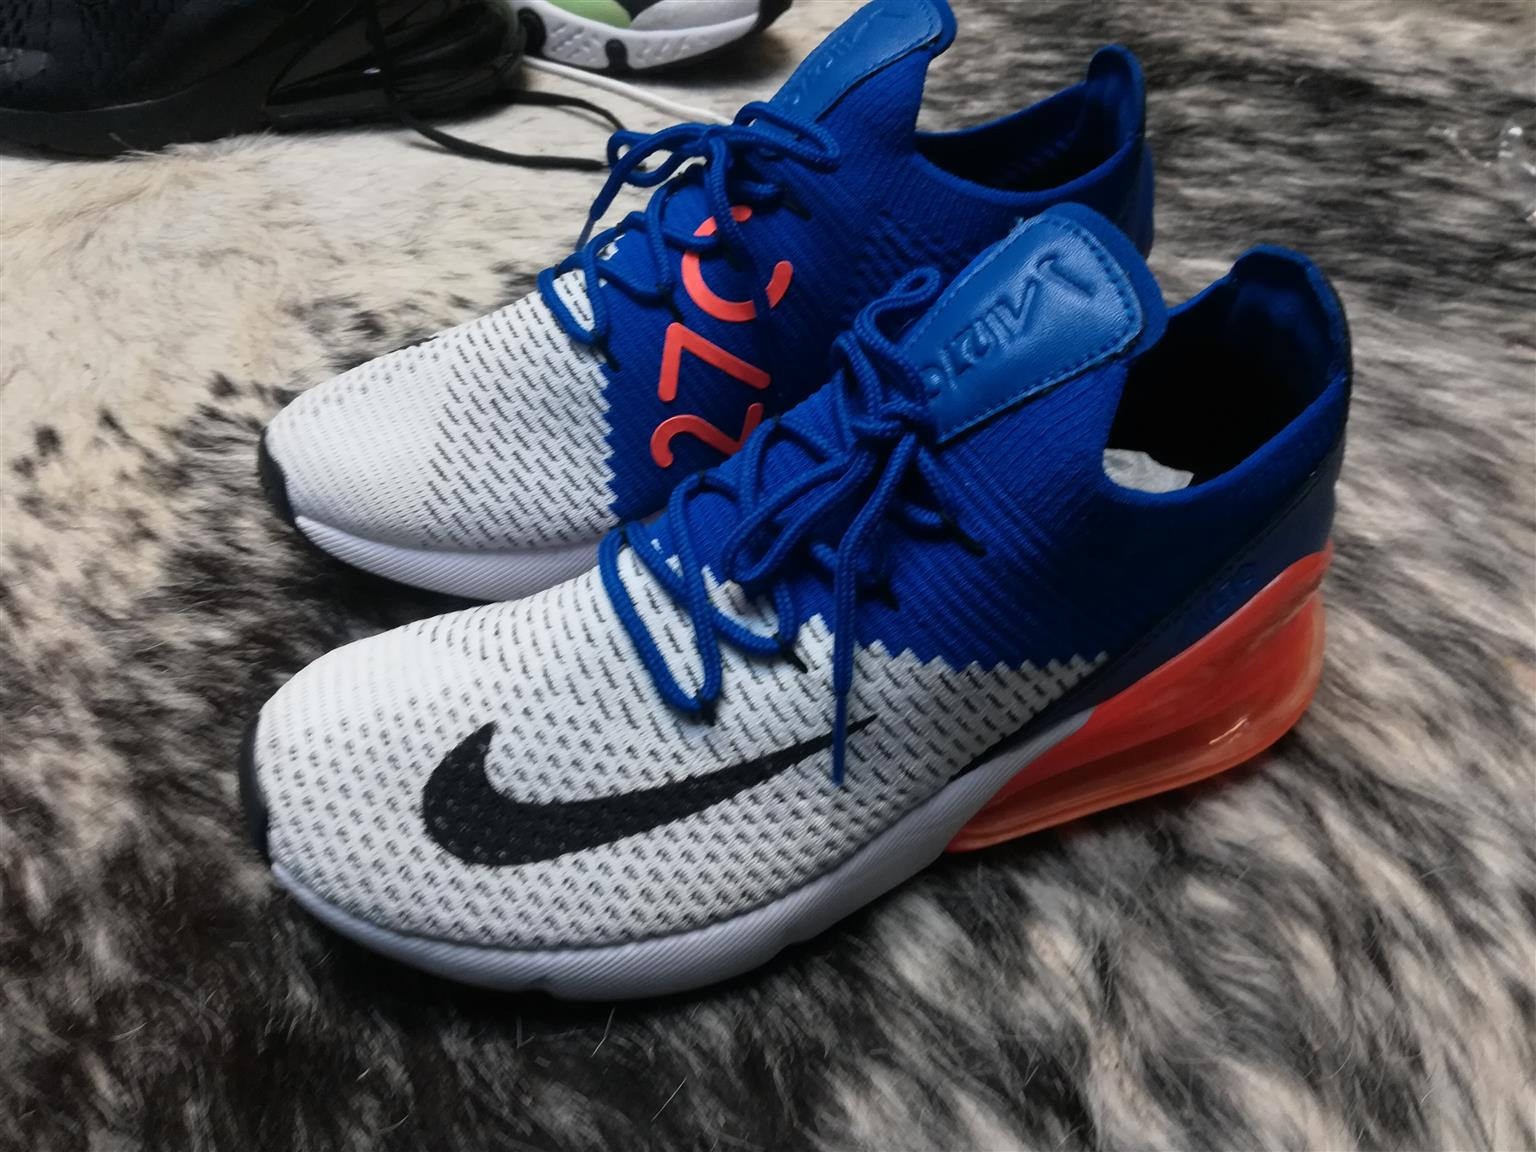 Nike Airmax 270 Flyknit for Sale R850